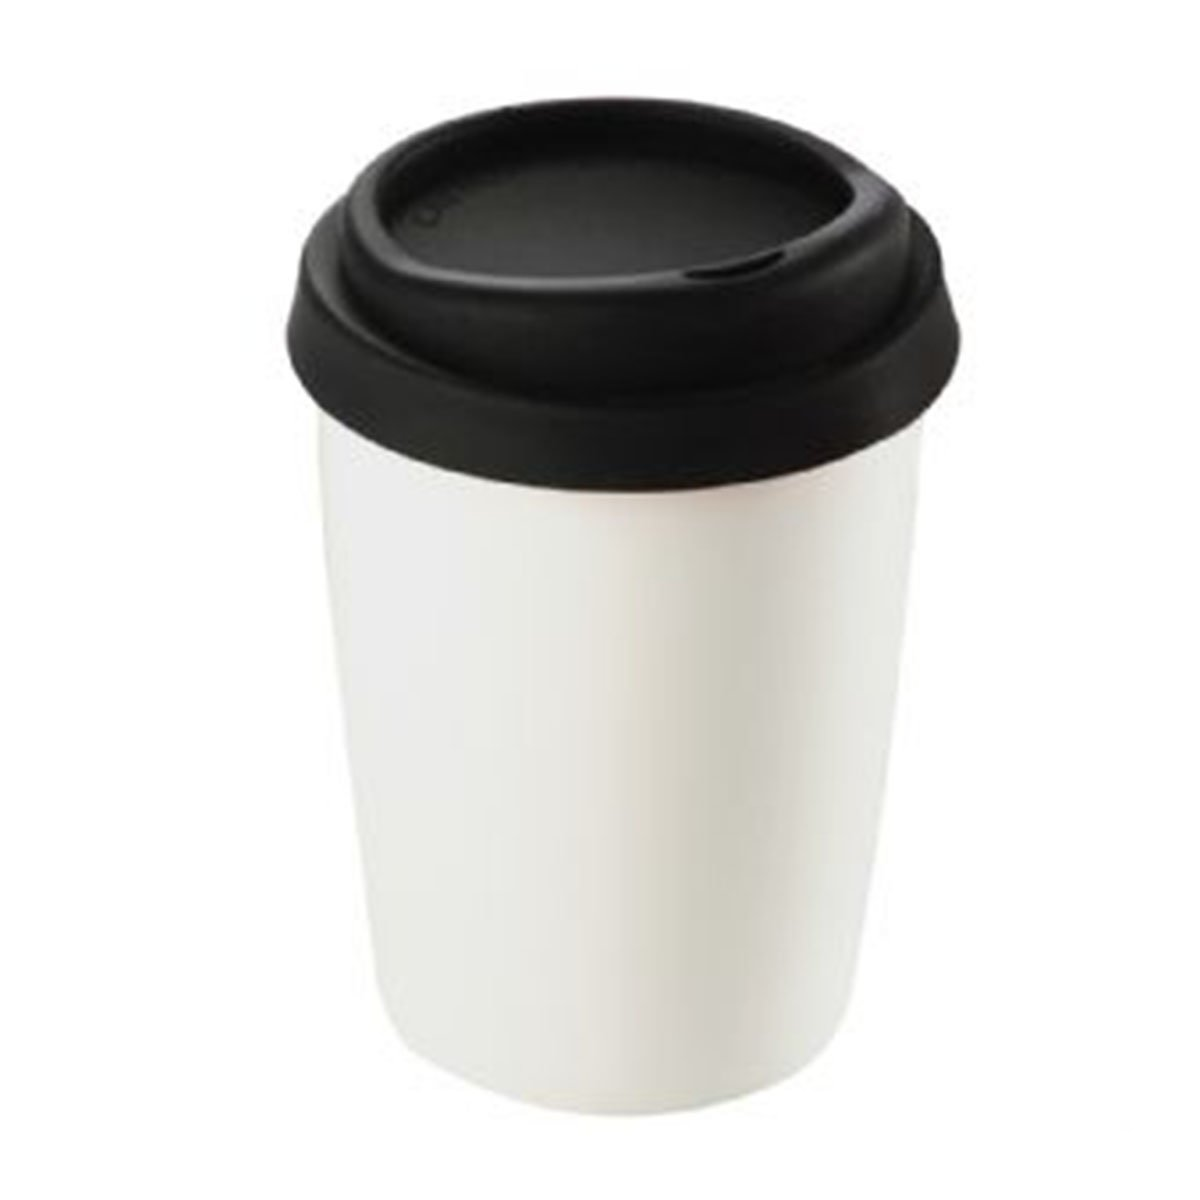 Ceramic Mug with Silicone Lid-White with Black Lid.